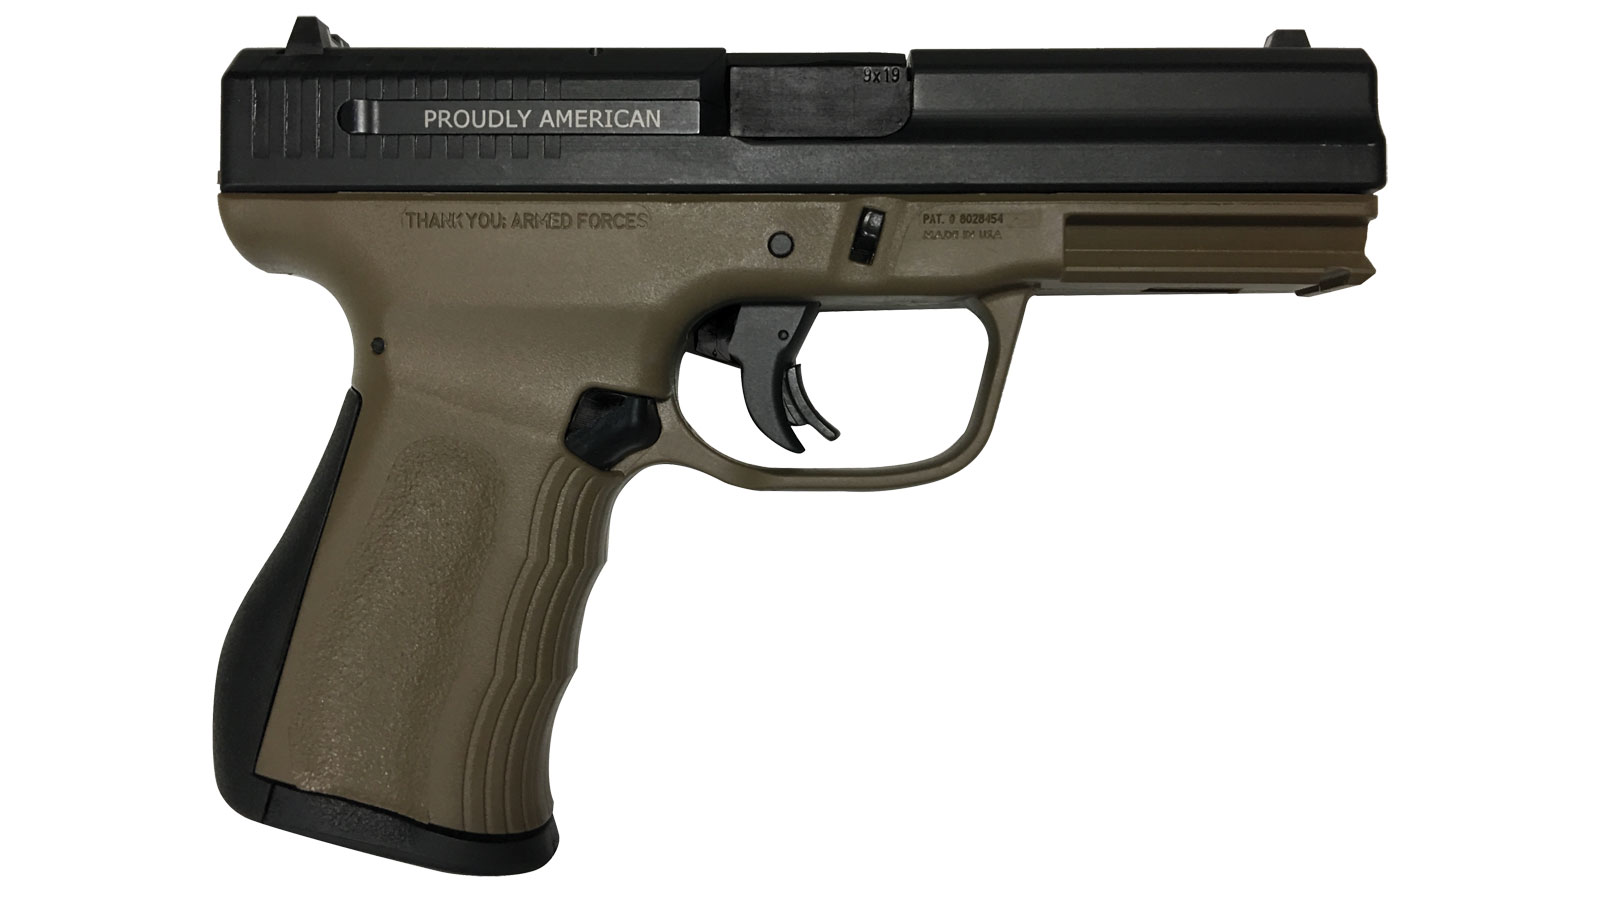 FMK Firearms 9C1 G2 Compact FAT, Semi-Automatic, 9mm, 4 quot Barrel, Burnt Bronze, 14+1 Rounds